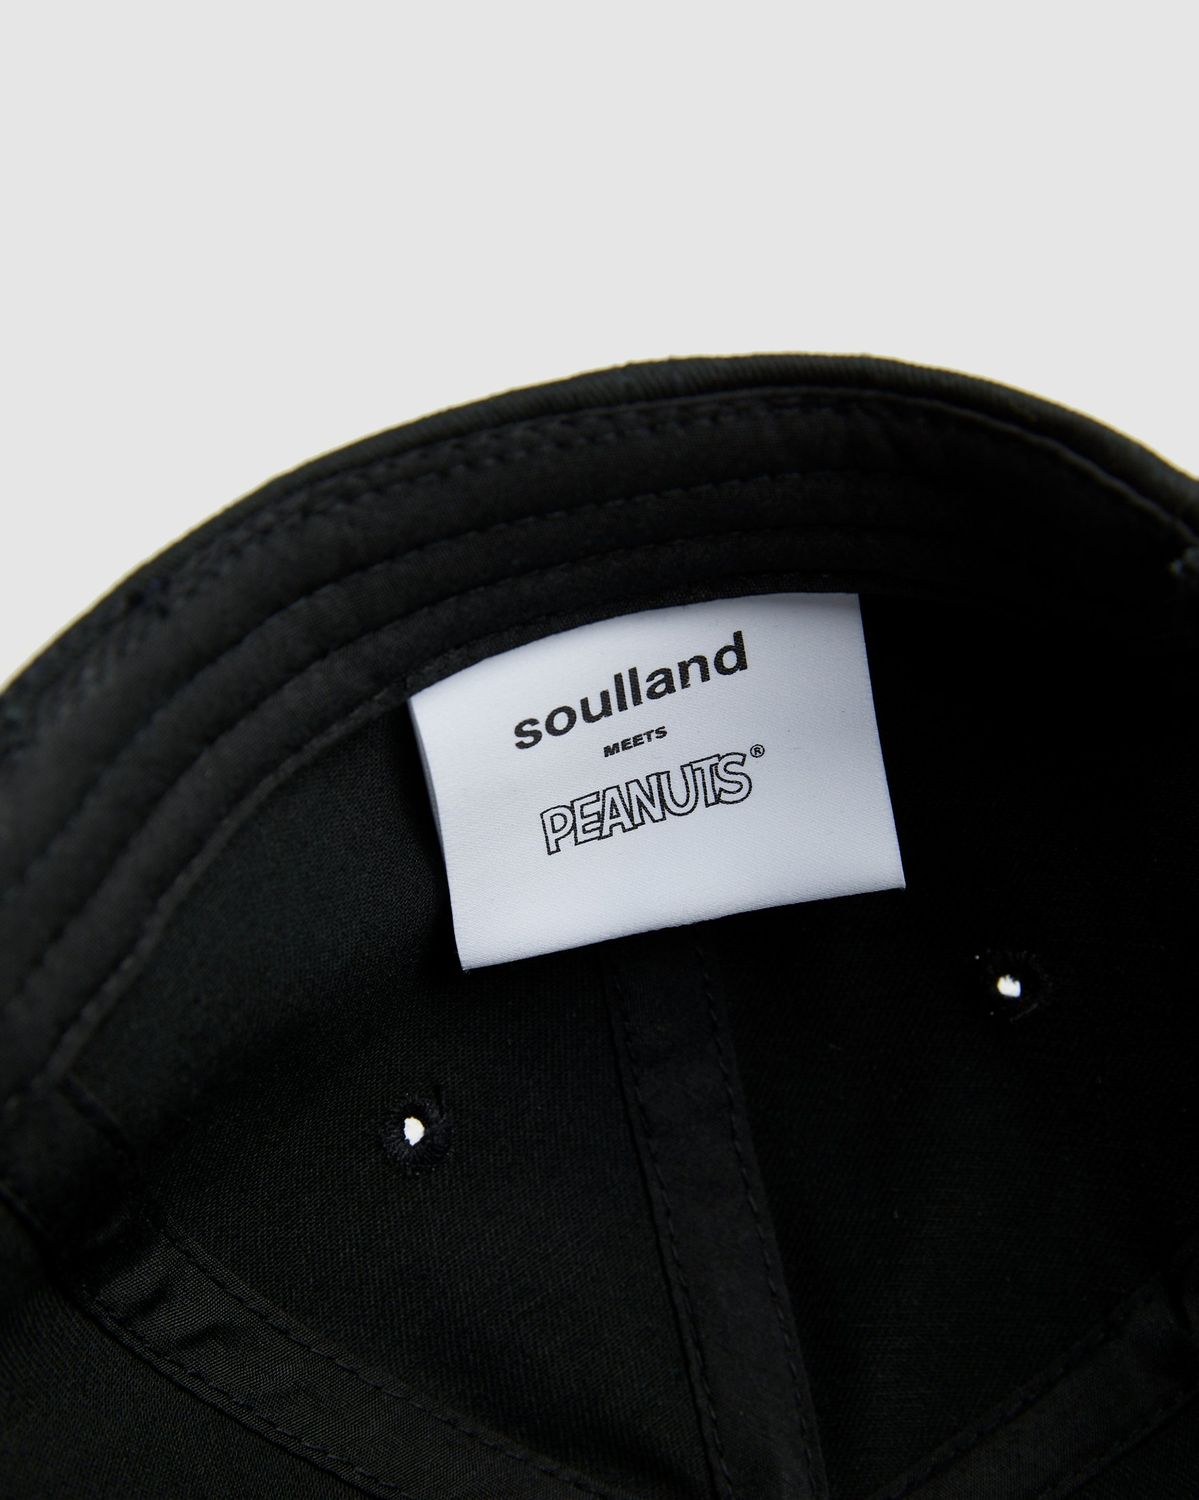 Colette Mon Amour x Soulland -  Snoopy Heart Black Baseball Cap - Image 3